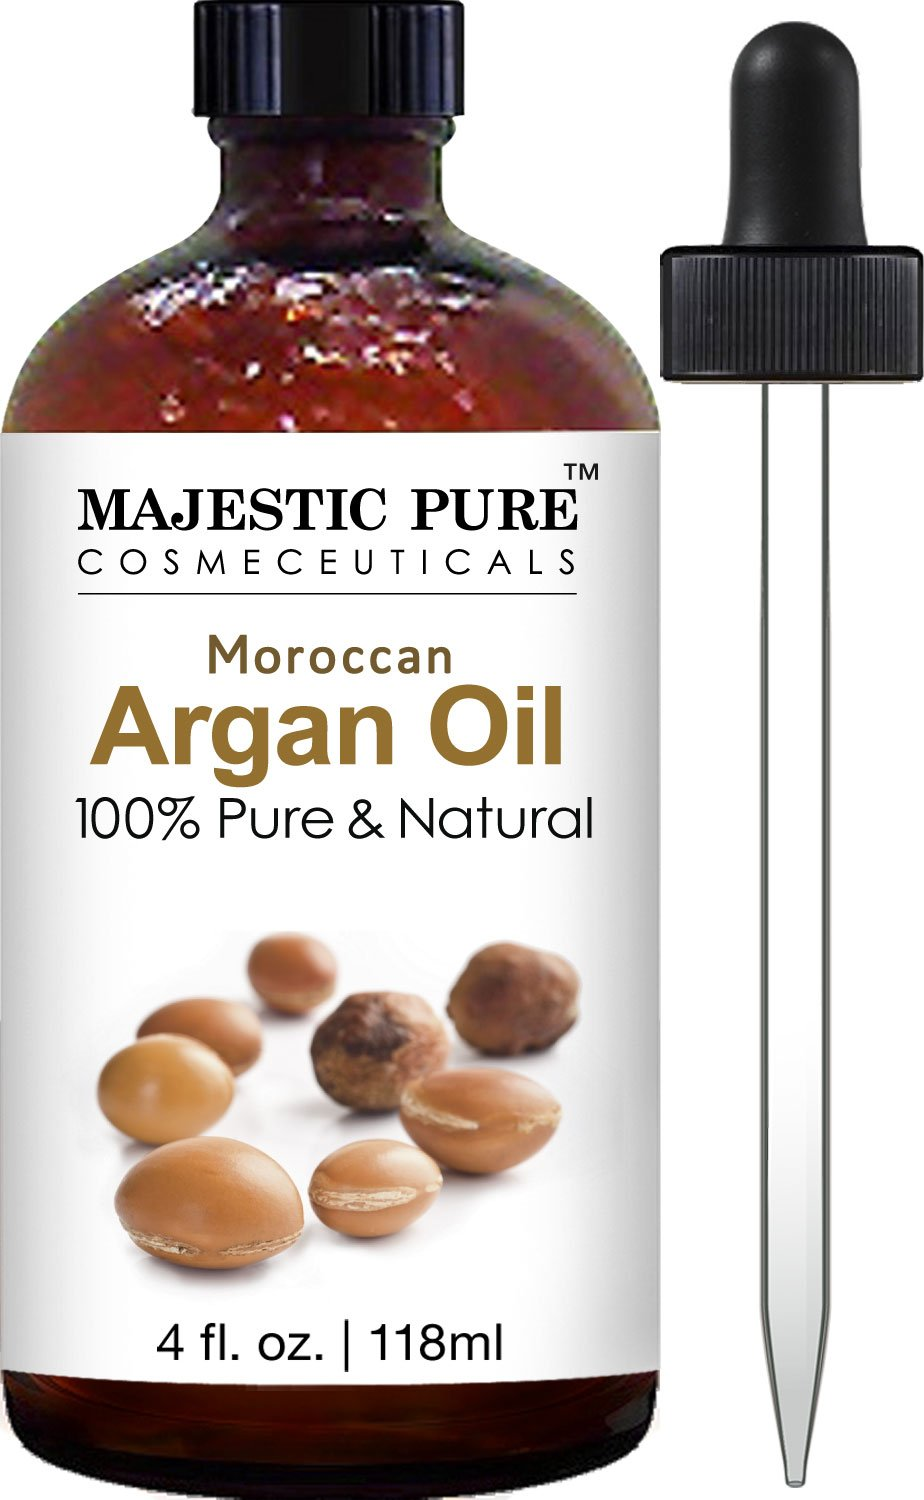 Majestic Pure Moroccan Argan Oil for Hair, Face, Nails, Beard & Cuticles - for Men and Women - 100% Natural & Organic, 4 fl. oz. by Majestic Pure